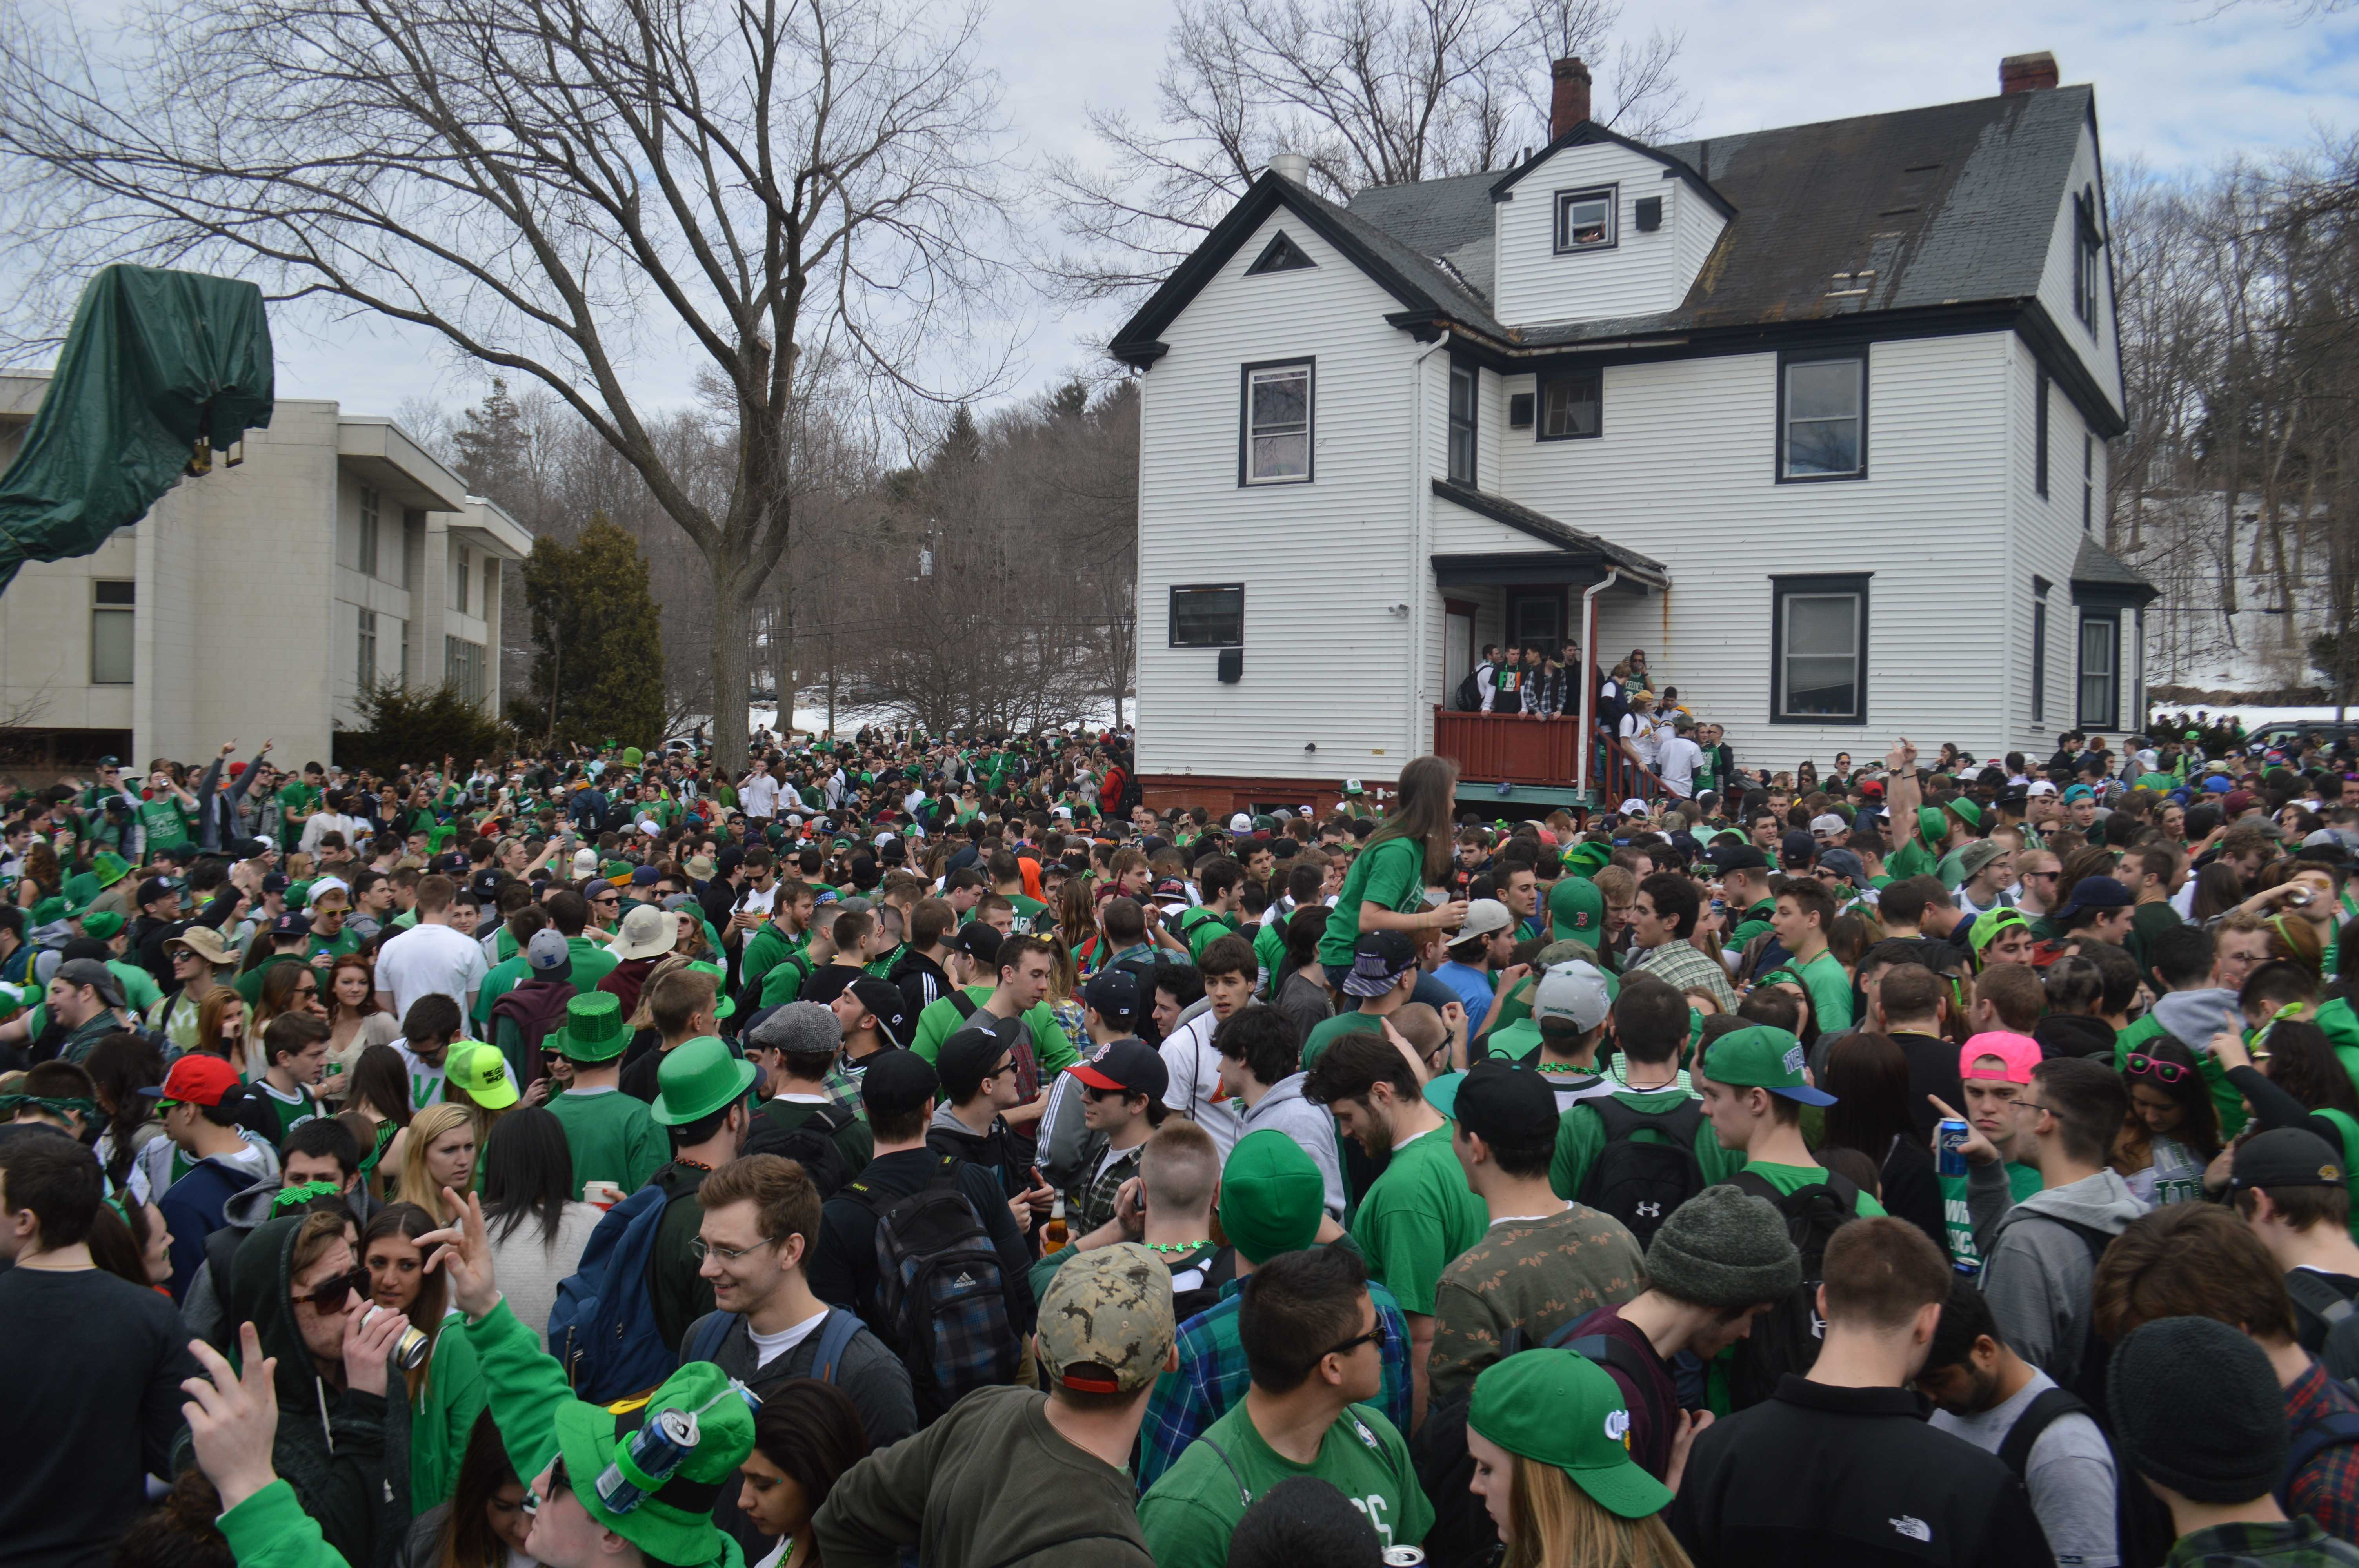 Photos from Blarney Blowout at Hobart, 2014